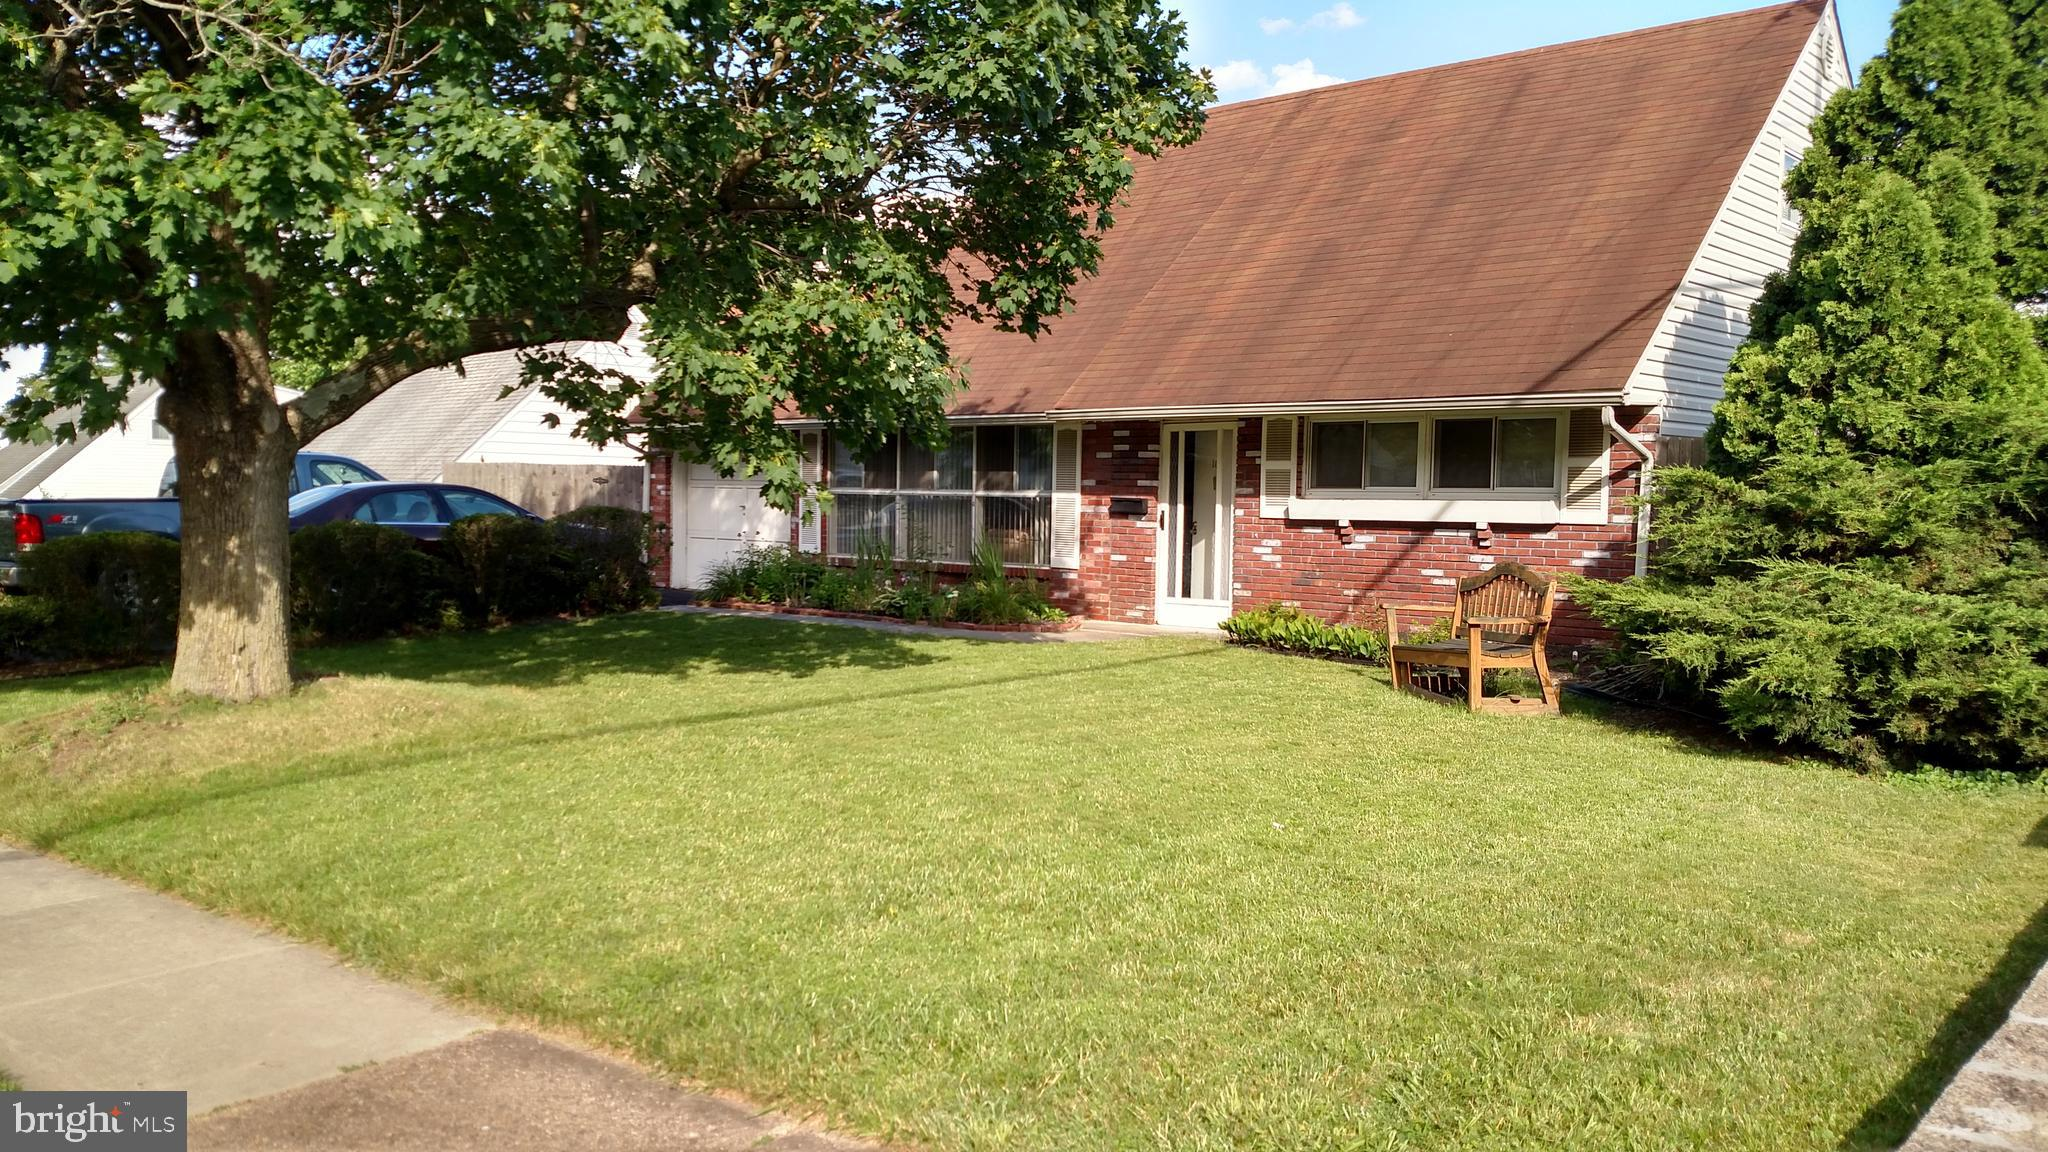 104 HEDGE ROAD, LEVITTOWN, PA 19056